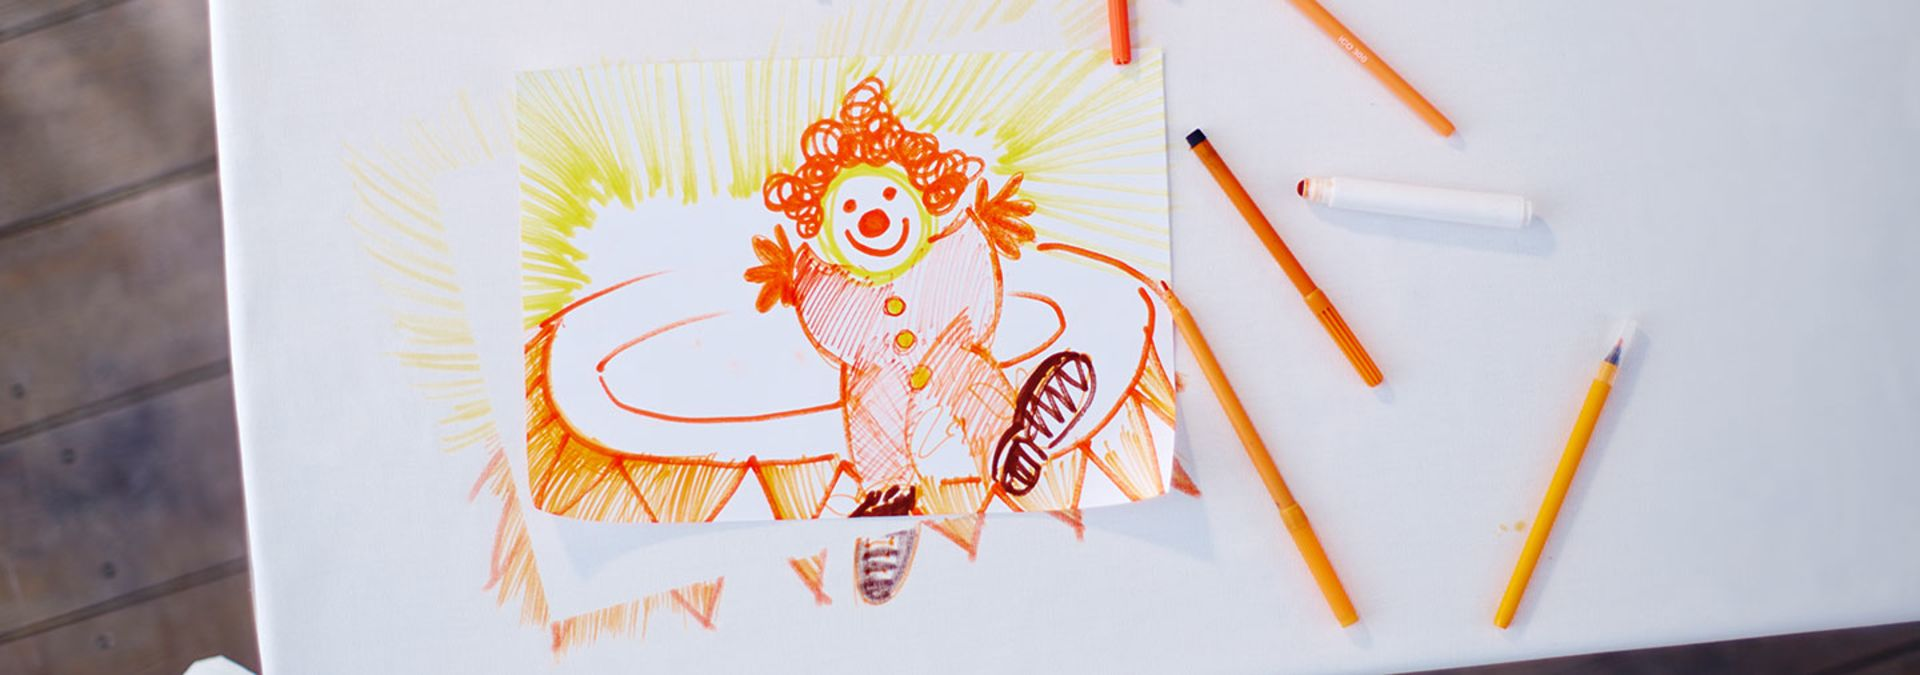 Colorful drawing on the table